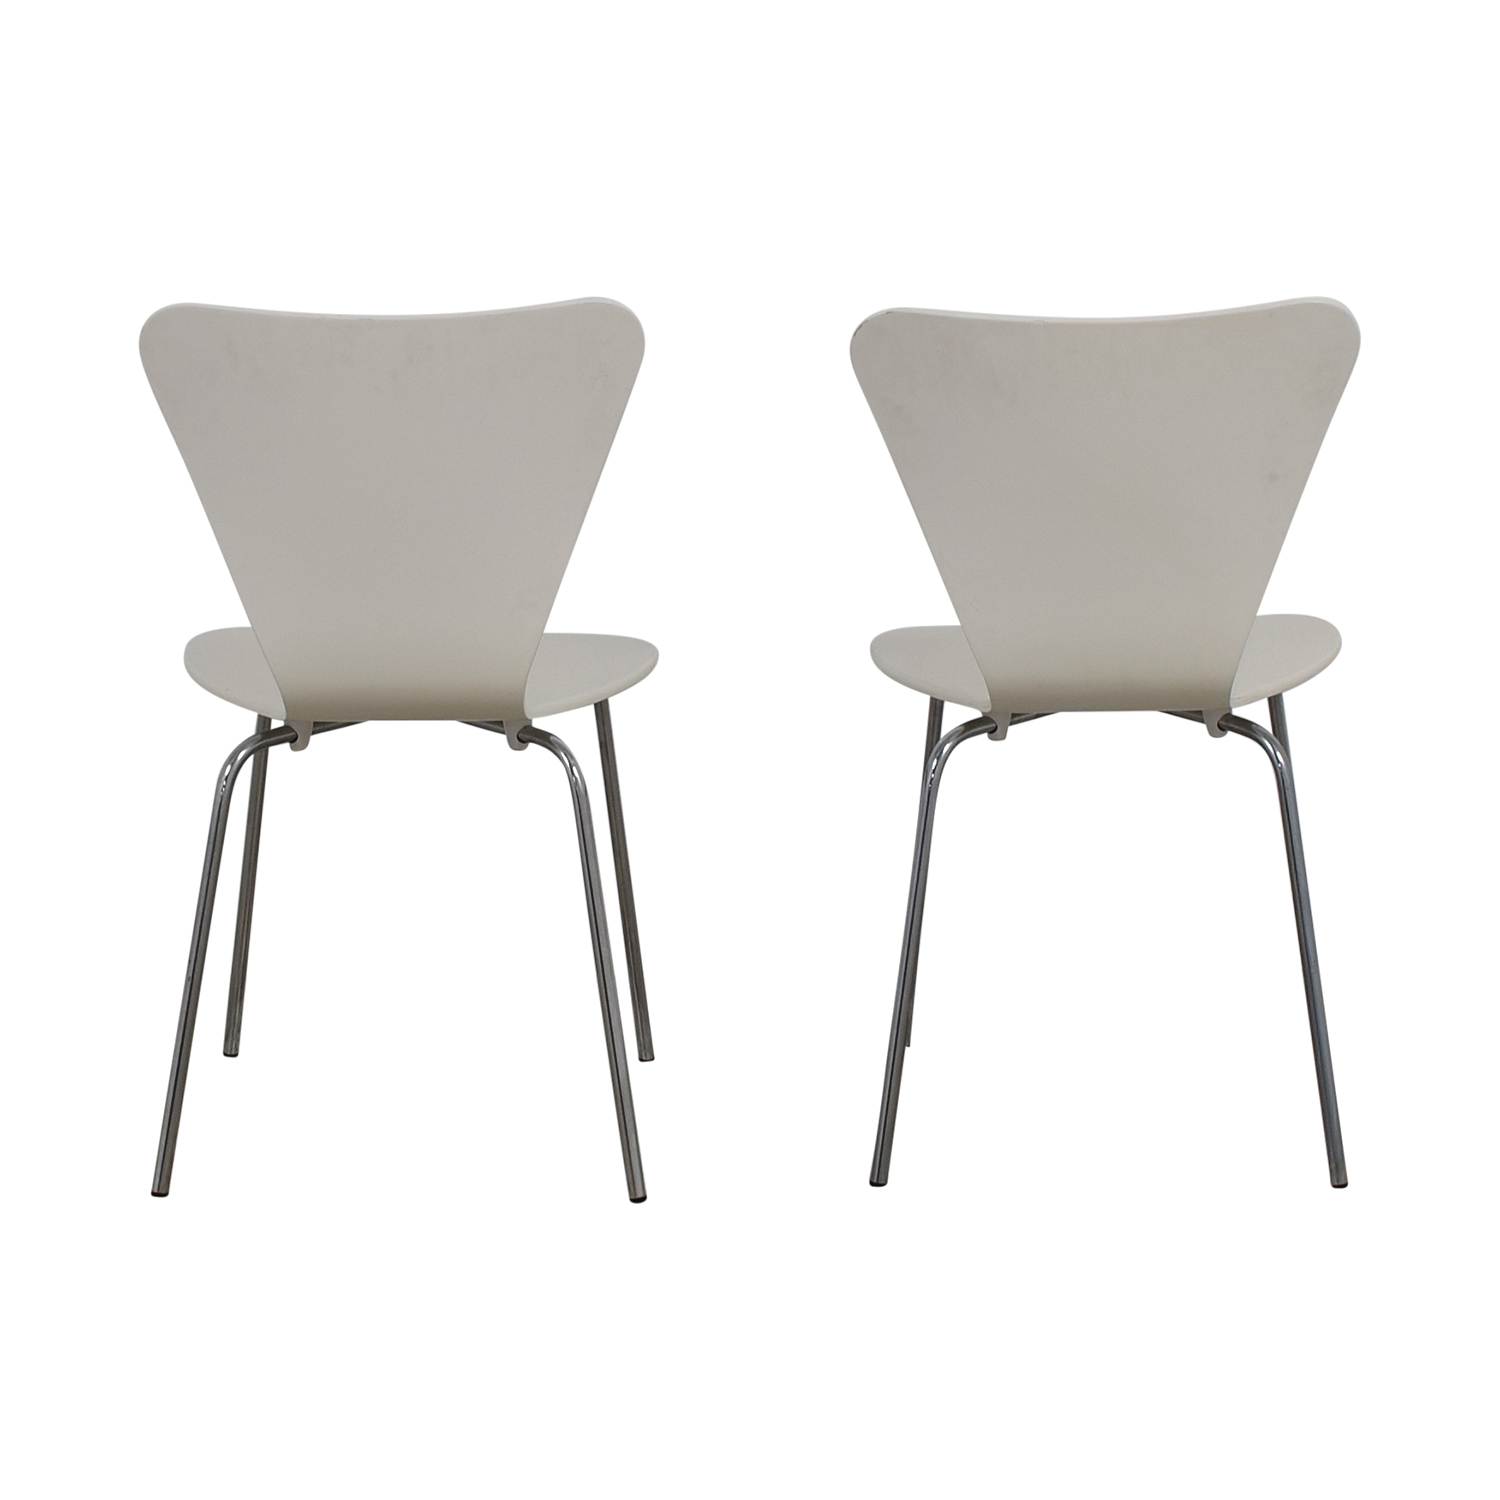 White Dining Chairs price